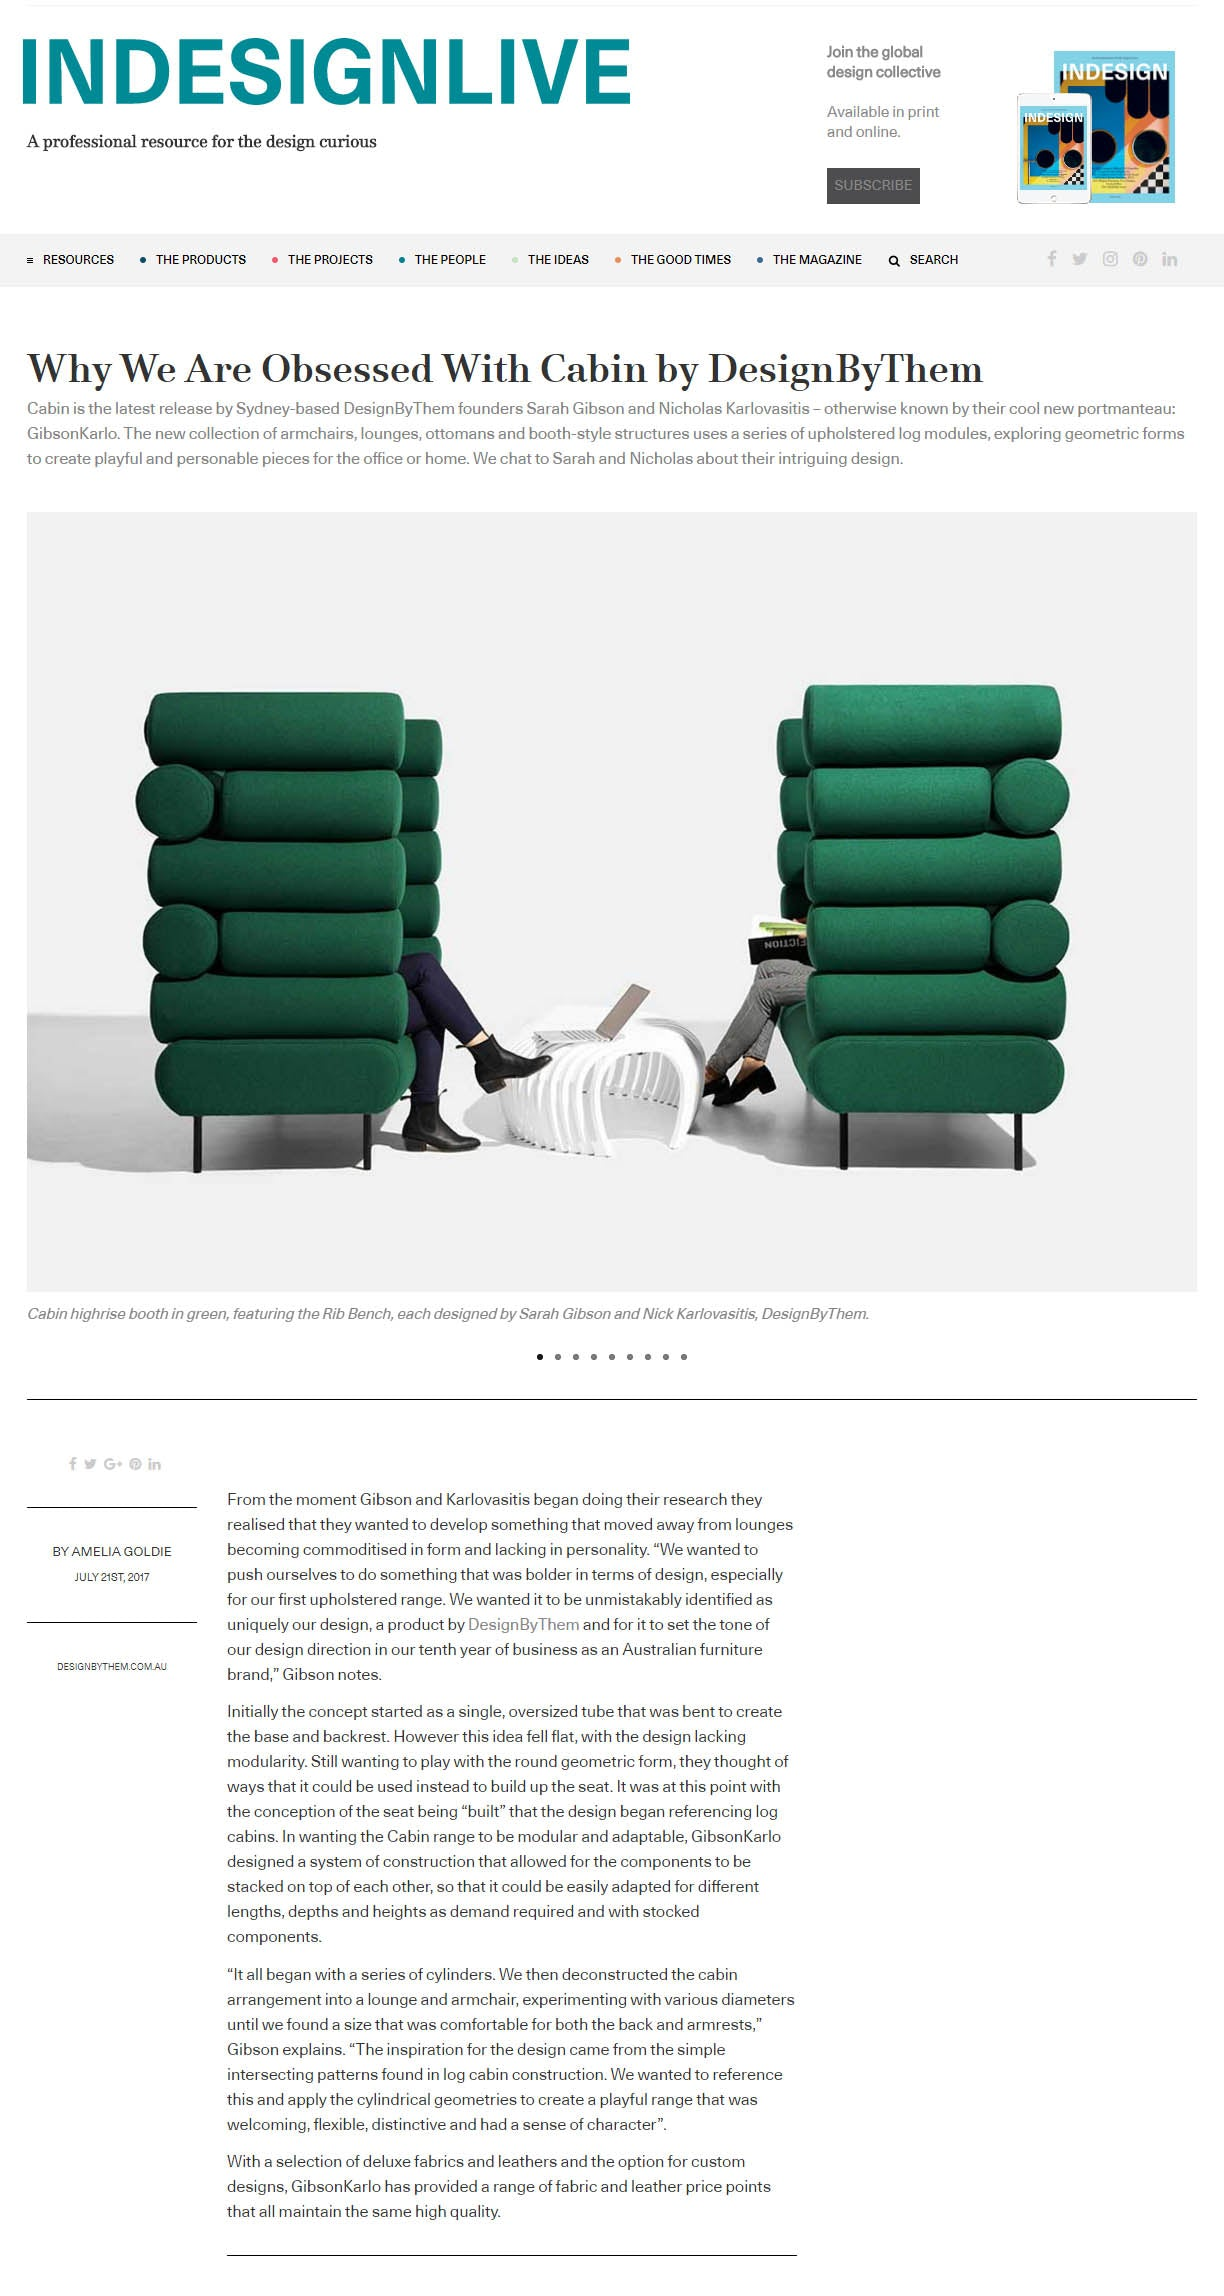 Indesign Live | Cabin Lounges by GibsonKarlo | DesignByThem